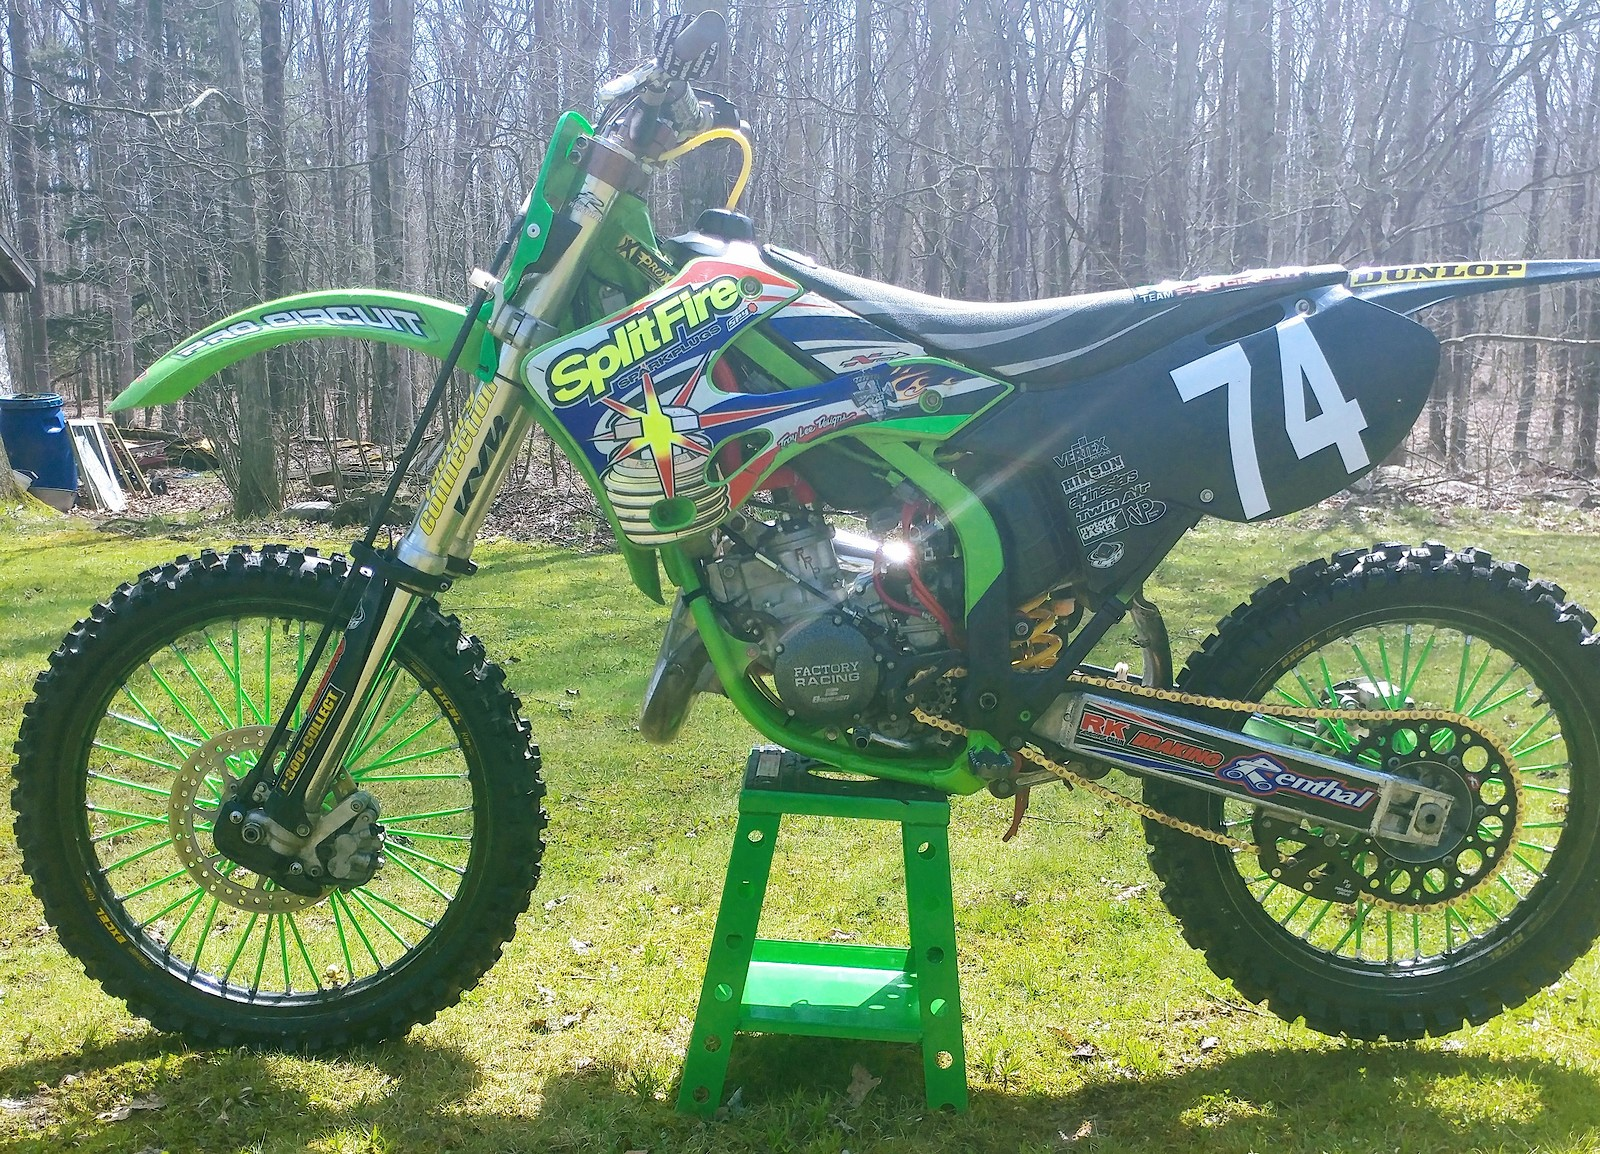 99 kx 125 splitfire replica  Ported and polished head done to a more rideable version of Charmichaels bike, runs on minimum 110 octane, work was done by RRP in new Jersey. Carb bored and jetted Factory connection suspension Pro circuit pipe and silencer Pro circuit linkage Pro circuit pegs Pro circuit top triple clamp Excel rims  Renthal twin wall bars Renthal sprockets Boyesen rad valve with new carbon fiber reeds Boyesen covers Boyesen water pump Pro x piston Pro x crank 6 hrs on full motor rebuild Mx bones carb hose kit  Radiator hose kit Primary drive chain guide New geo max mx 52 tires Every bearing is new Breaking brake disks Bike was in storage from 03 to 2017, taken out and totally rebuilt 3500. Located in Pennsylvania Original owner NO TRADES PLEASE.